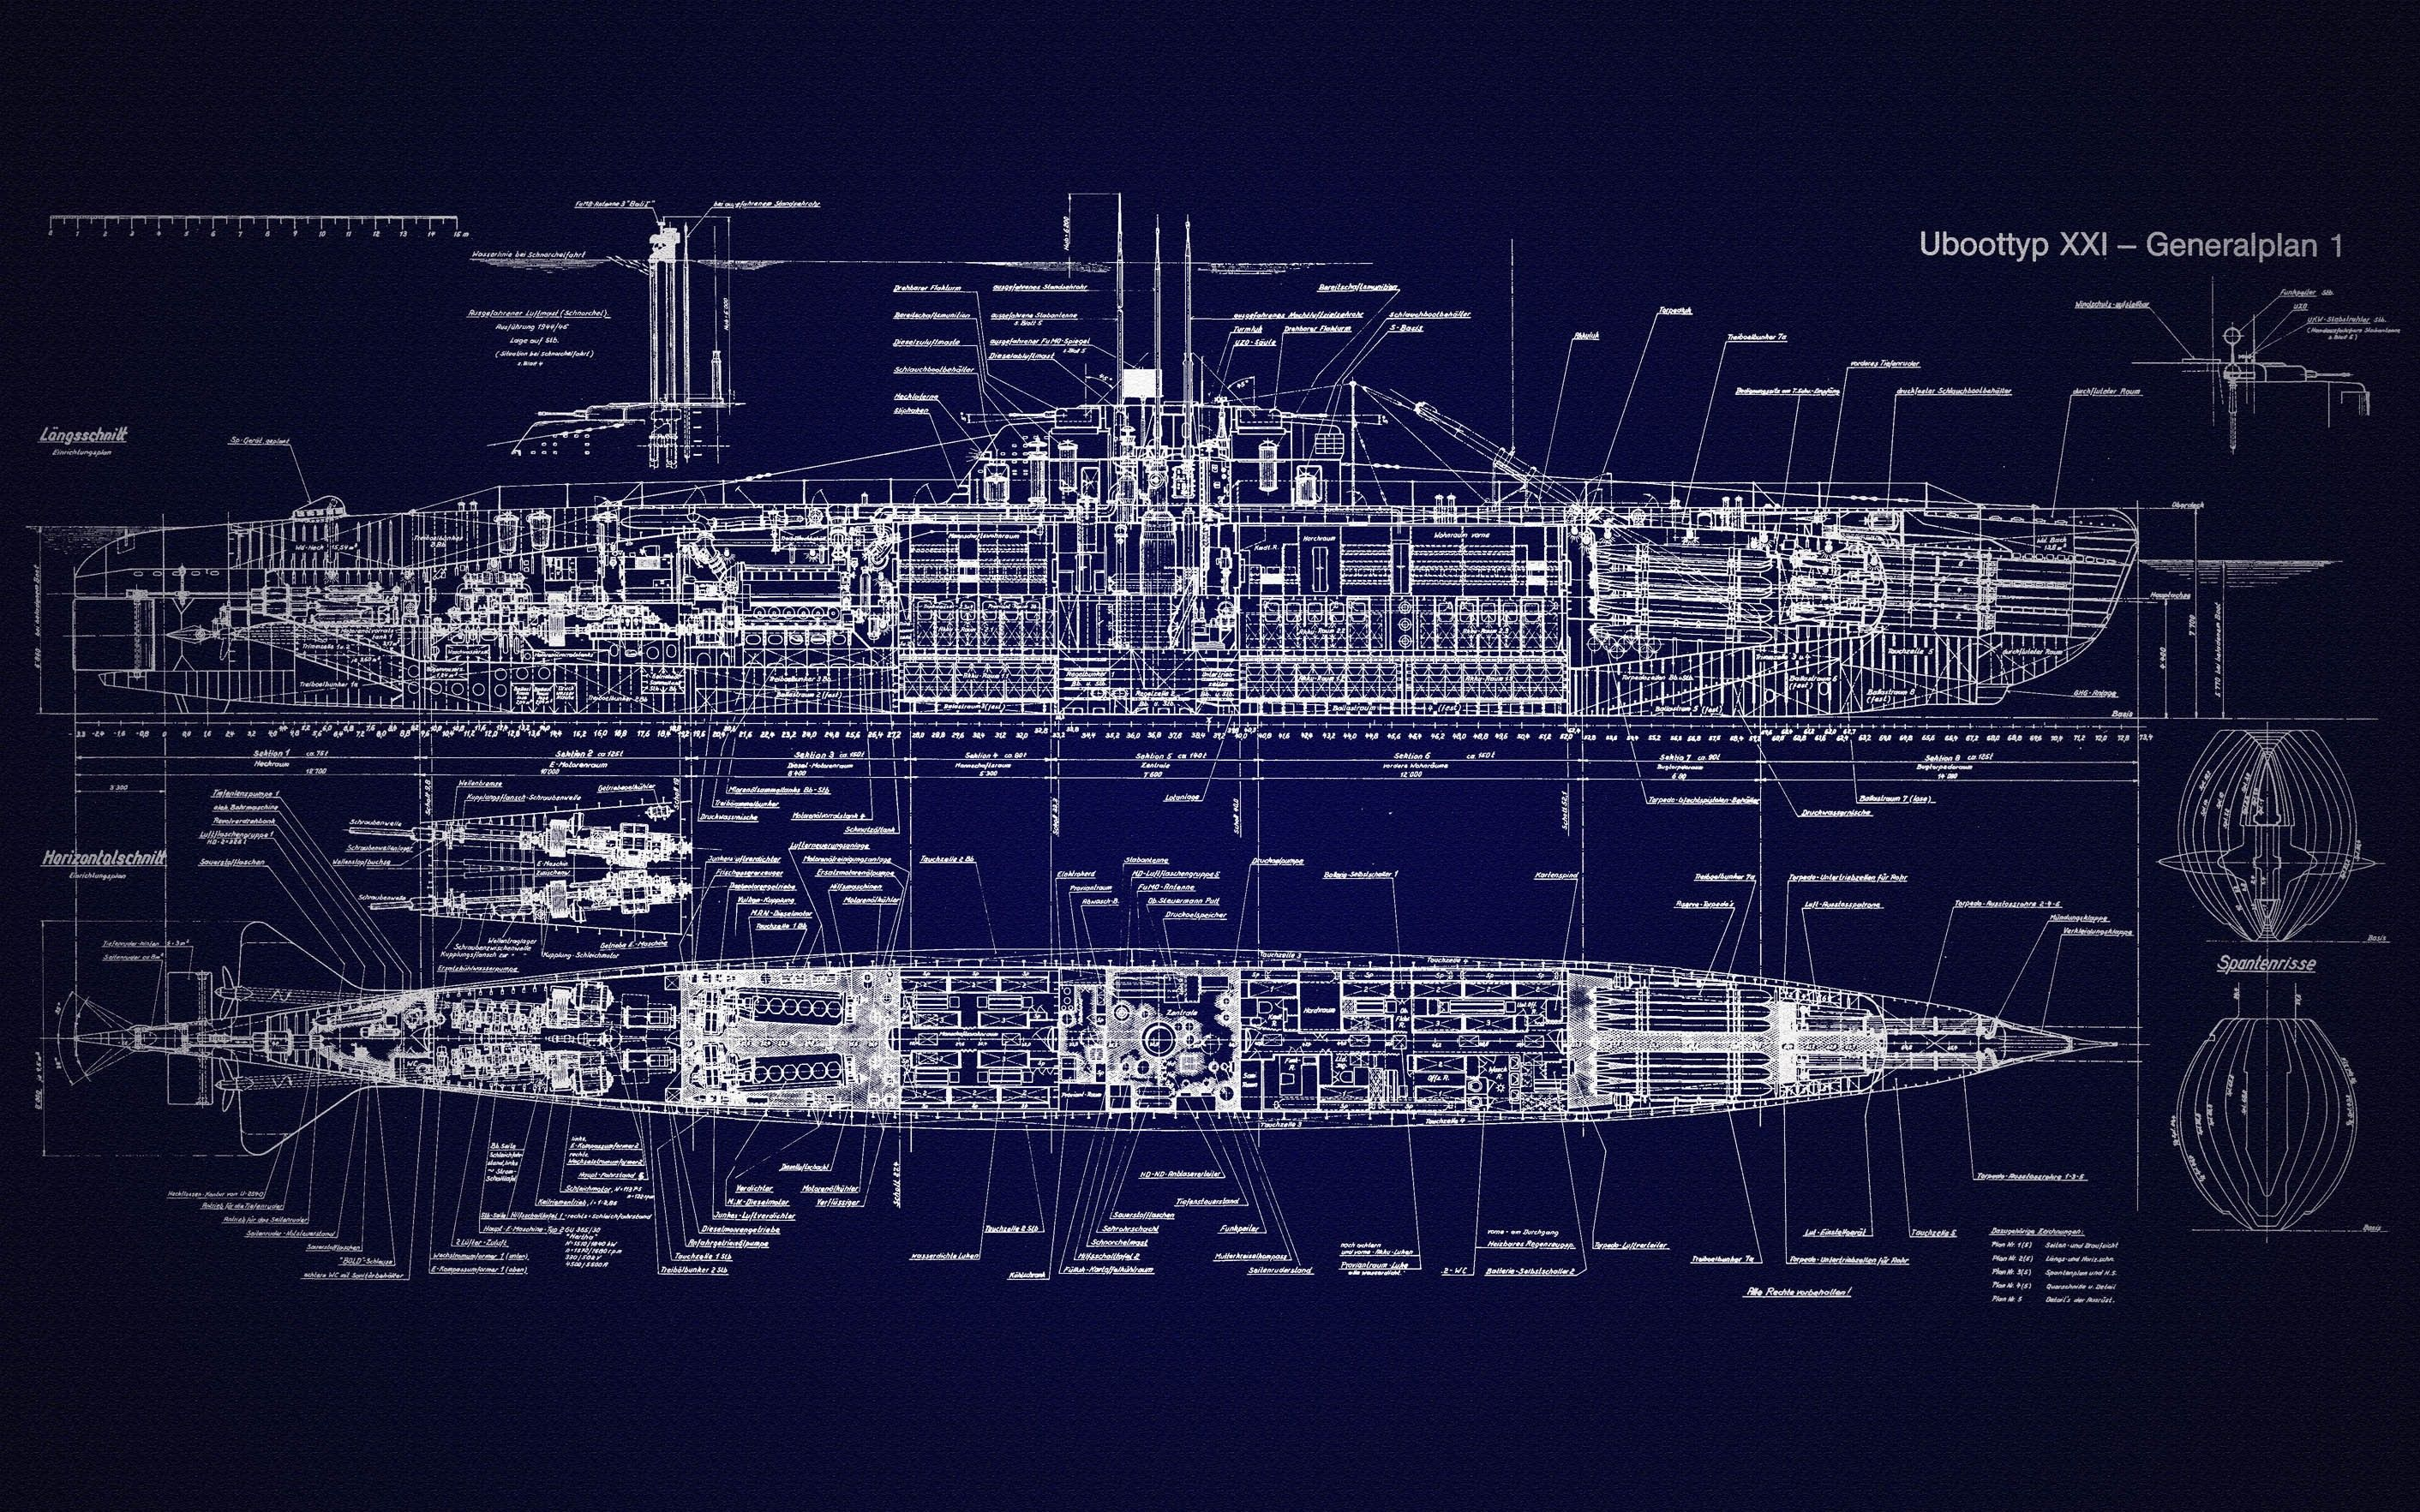 blueprints submarine u boat type xxi schematic wallpaper [ 2824 x 1765 Pixel ]